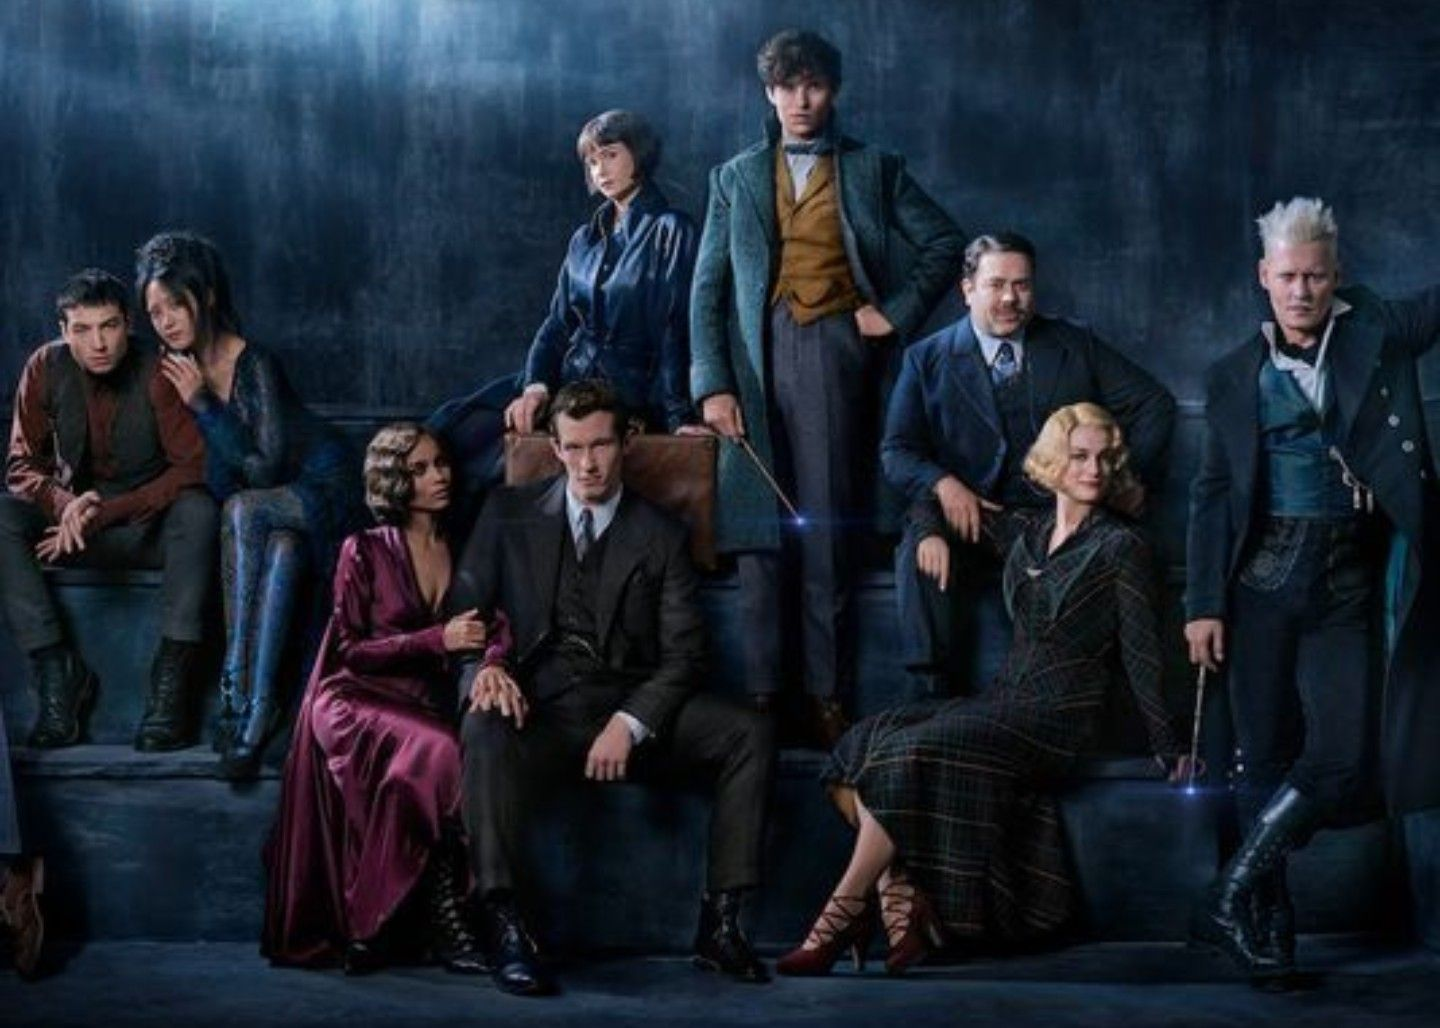 Fantastic Beasts The Crimes Of Grindelwald 11 16 2018